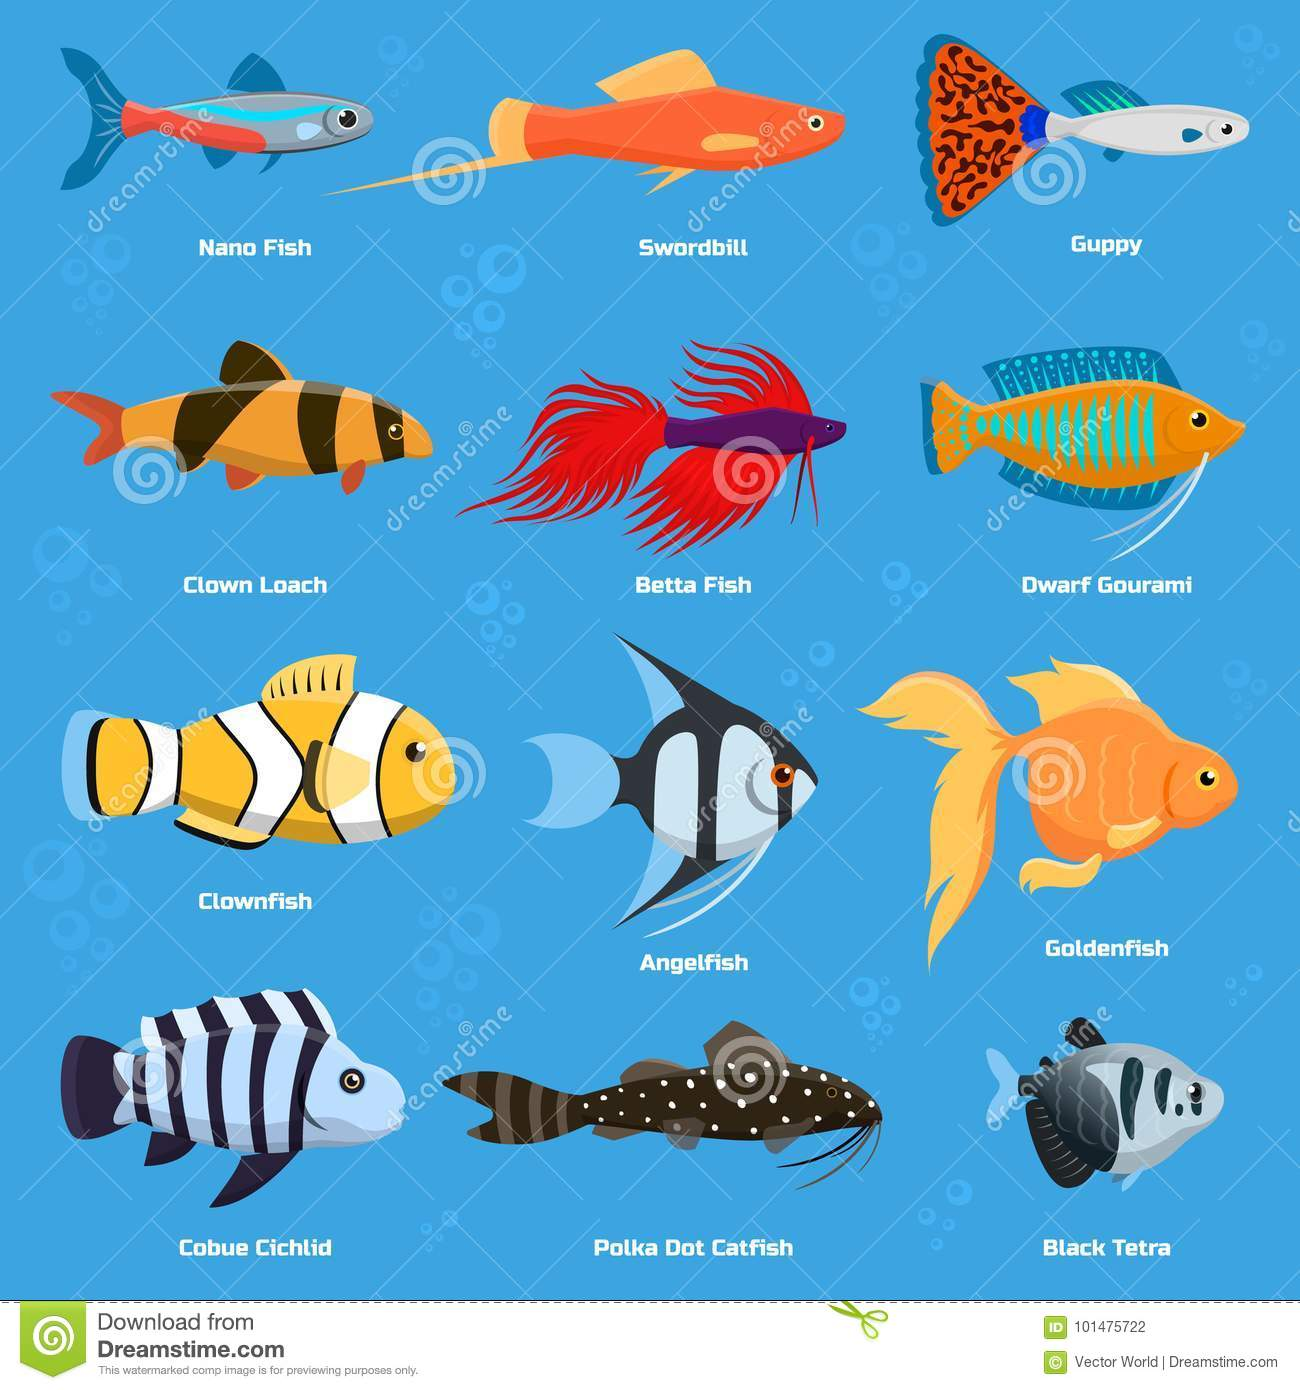 Aquarium And Ocean Fish Breeds Underwater Bowl Tropical Aquatic Animals Water Nature Pet Characters Vector Illustration Stock Vector Illustration Of Aquarium Lace 101475722